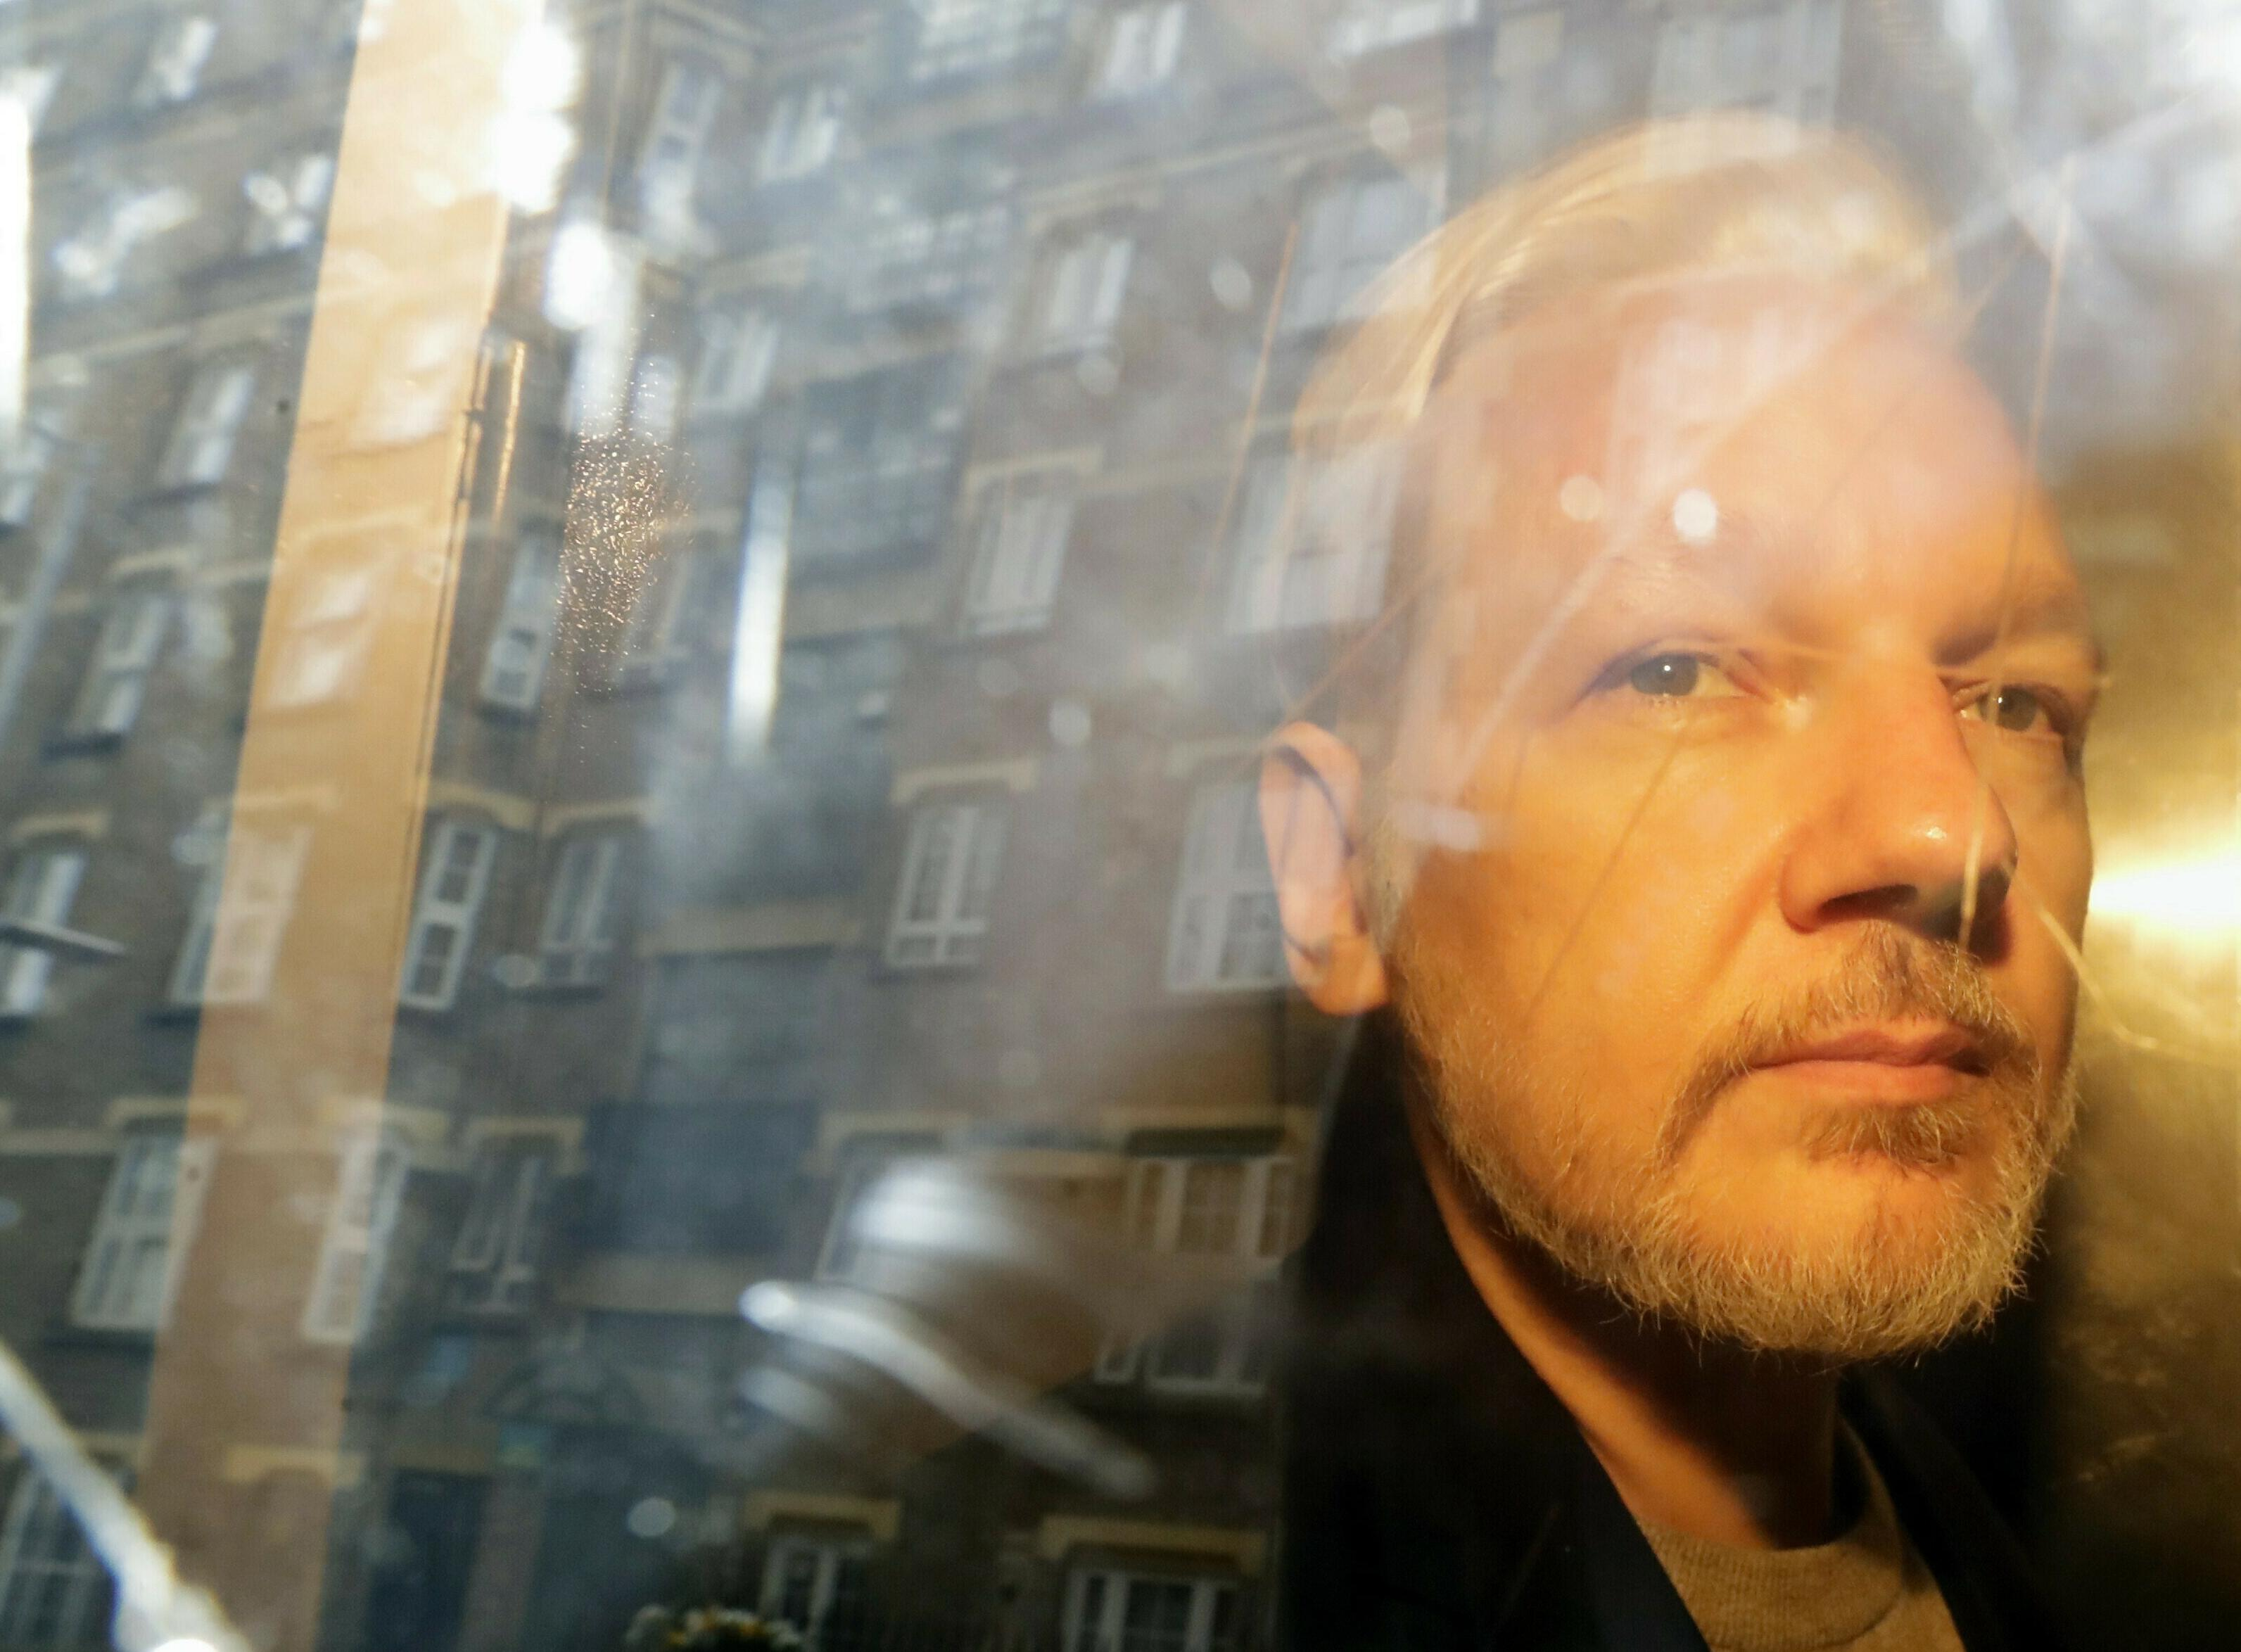 Julian Assange ordered to remain behind bars pending extradition once prison sentence ends: Report